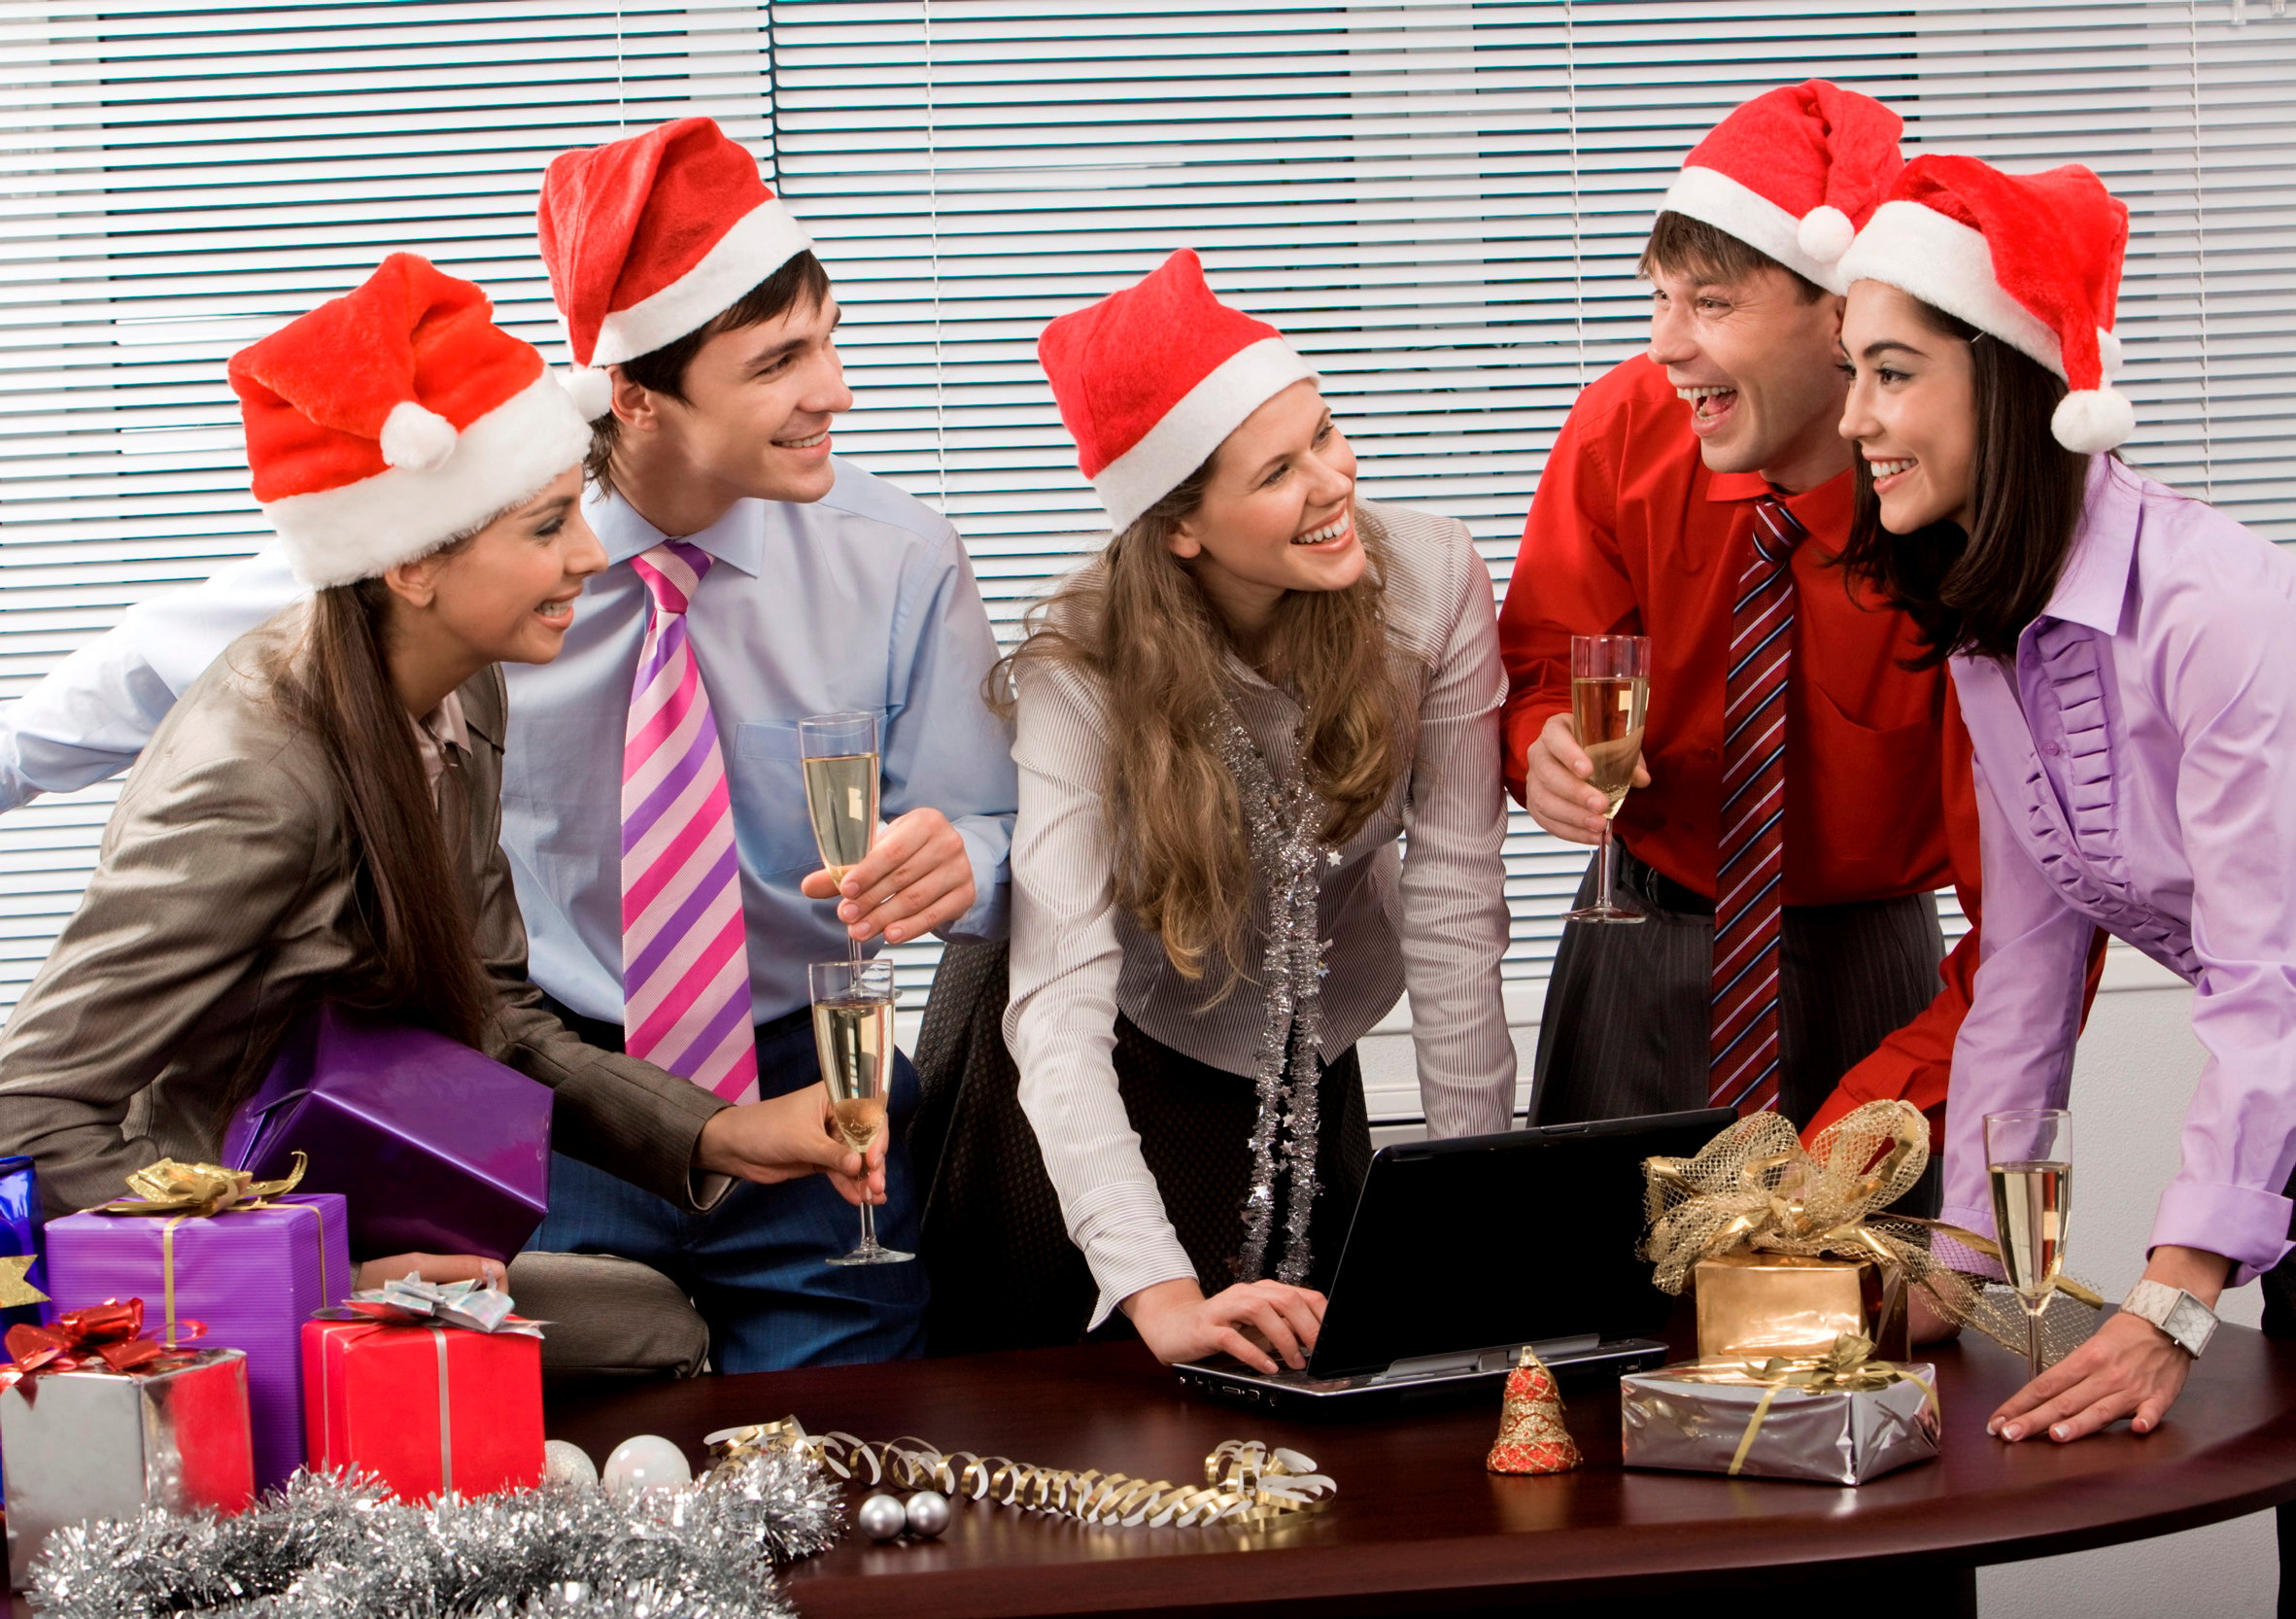 How Not To Behave During Your Office Christmas Party Nijobfinder Co Uk